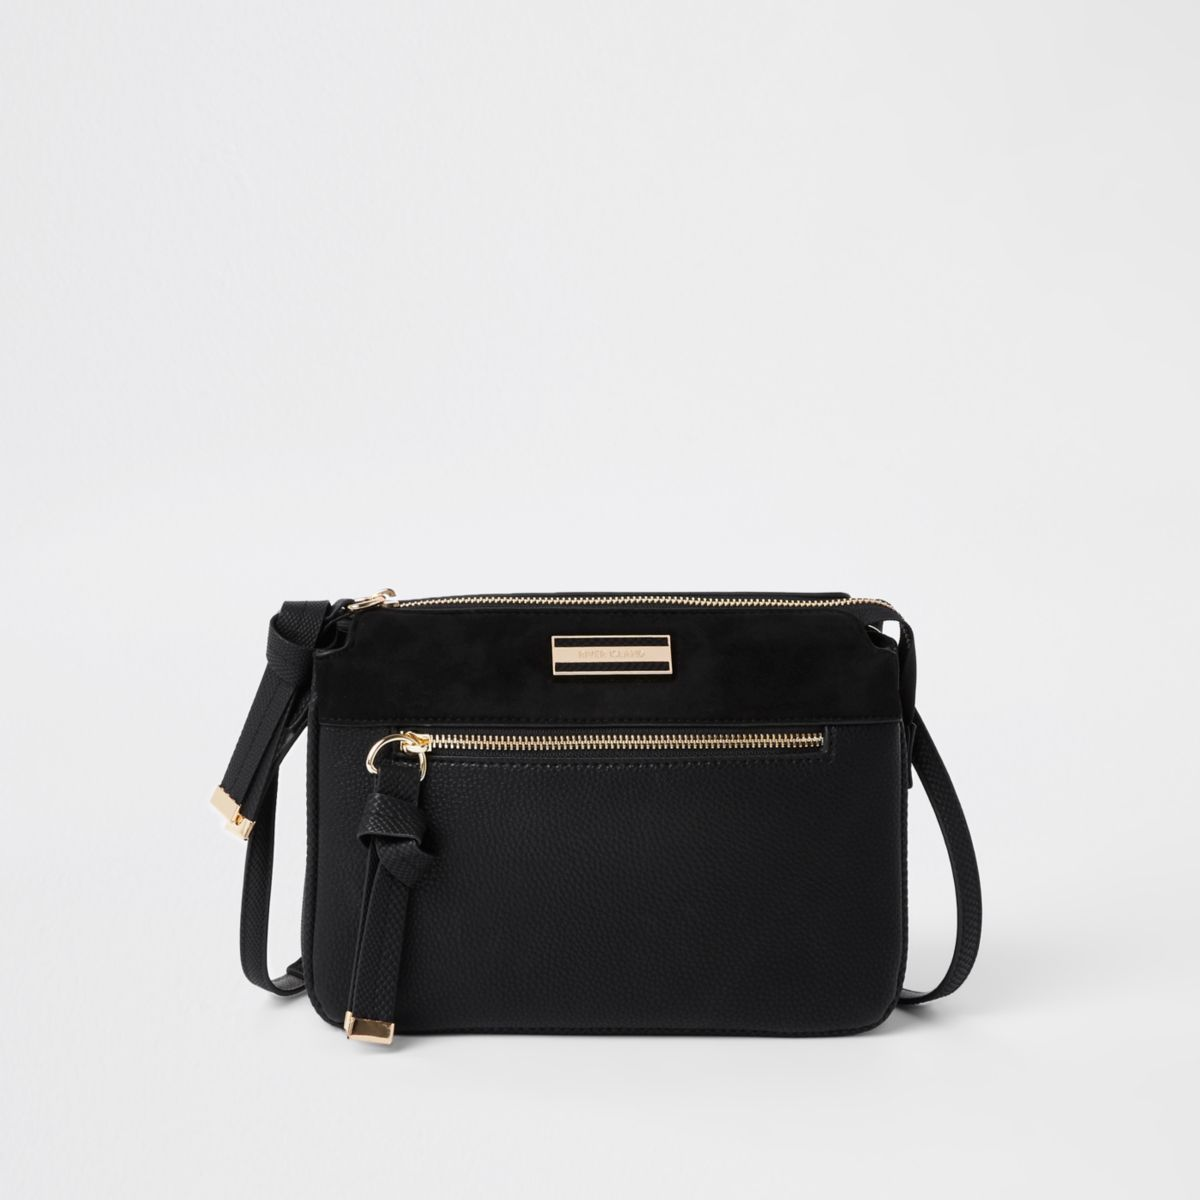 Black triple compartment crossbody bag